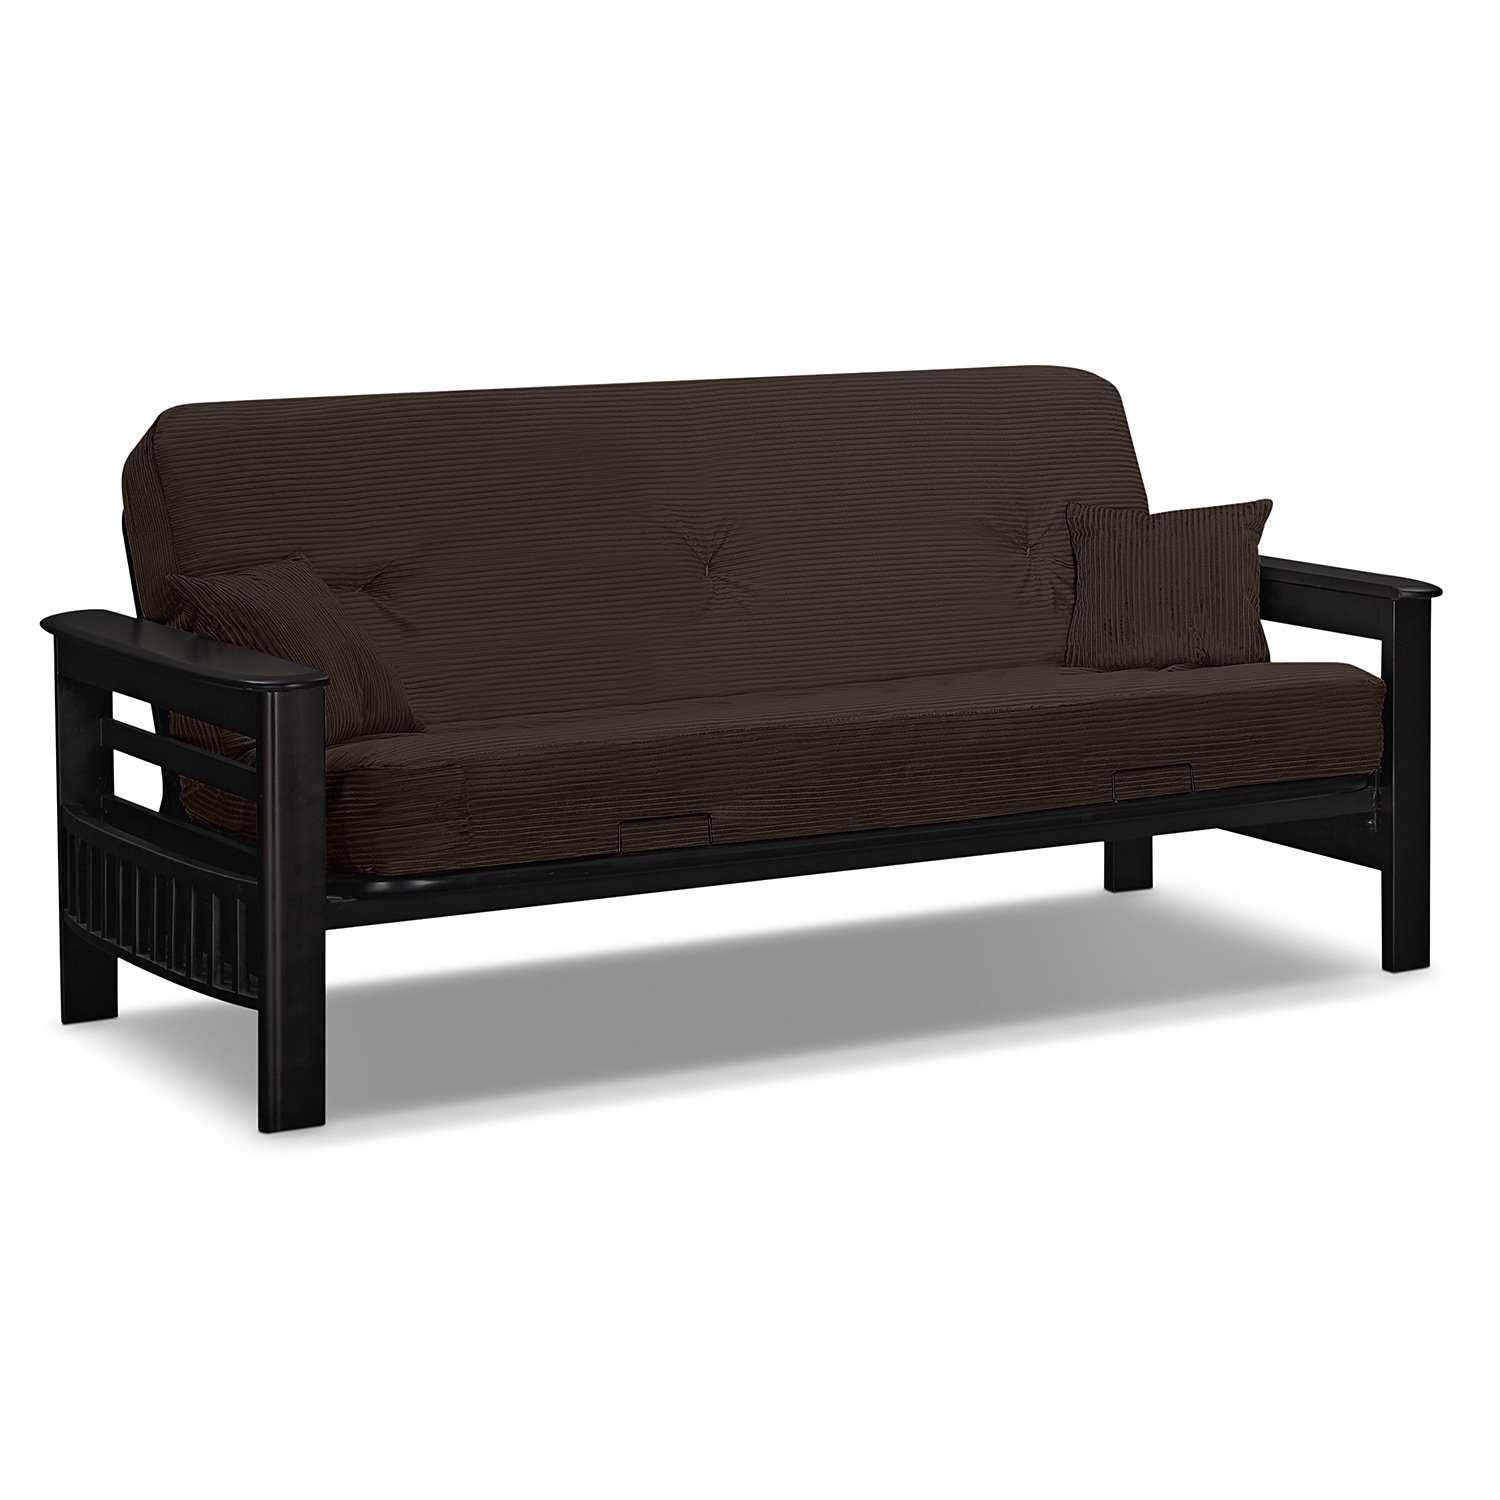 Tampa futon sofa bed value city furniture for Sofa bed futon